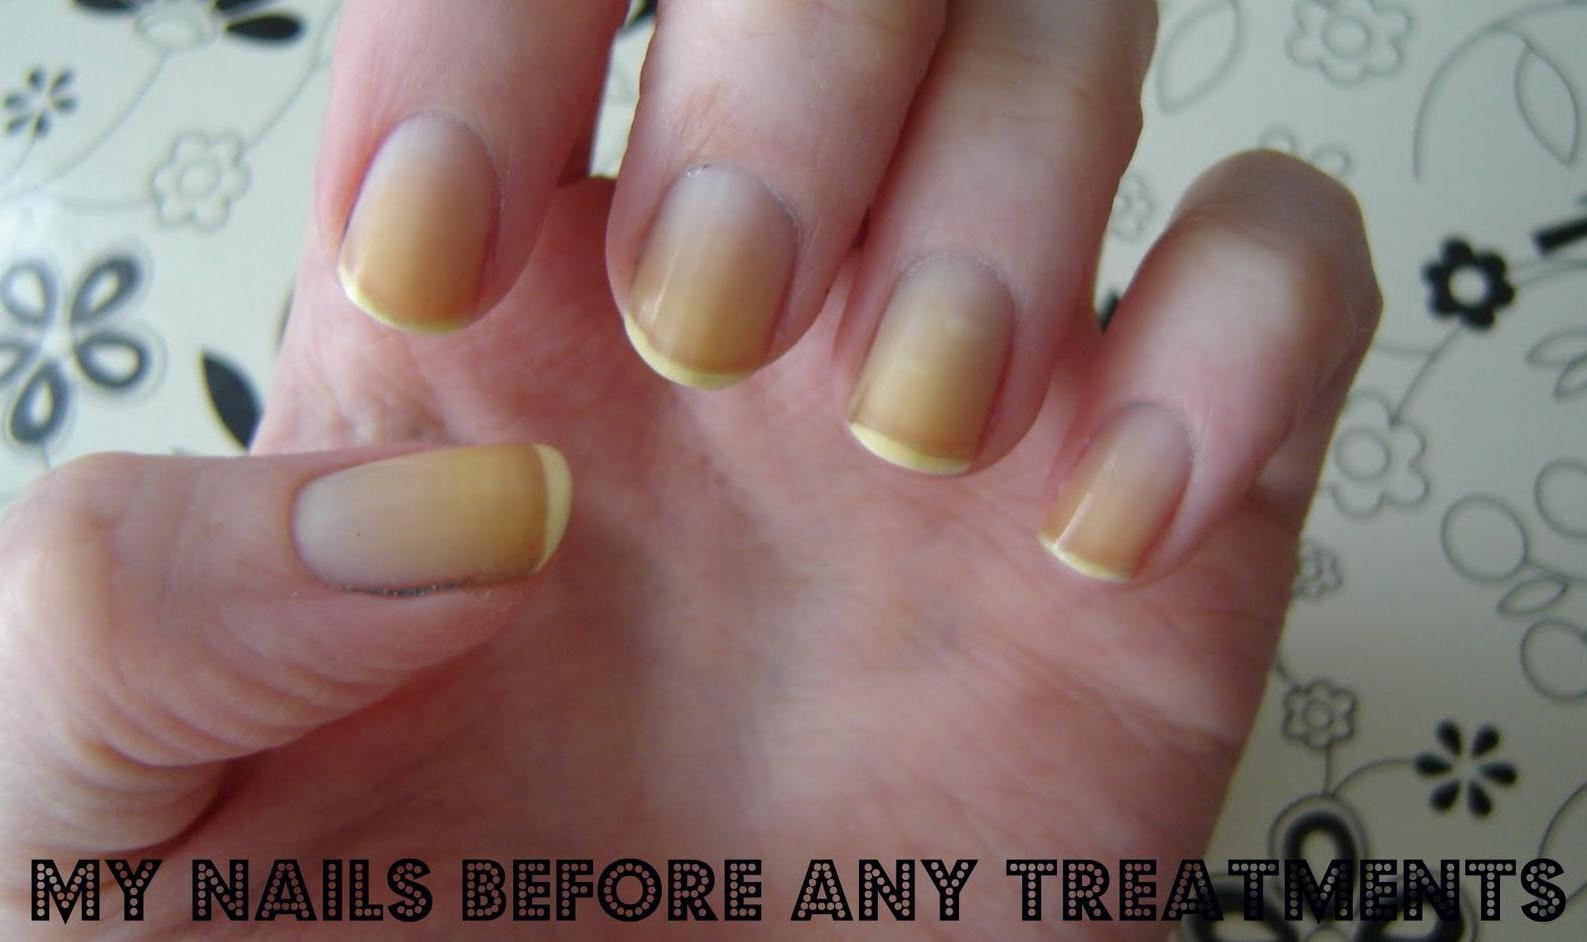 How To Whiten Yellow Nails: Simple Home Remedies That Work! - MediMiss